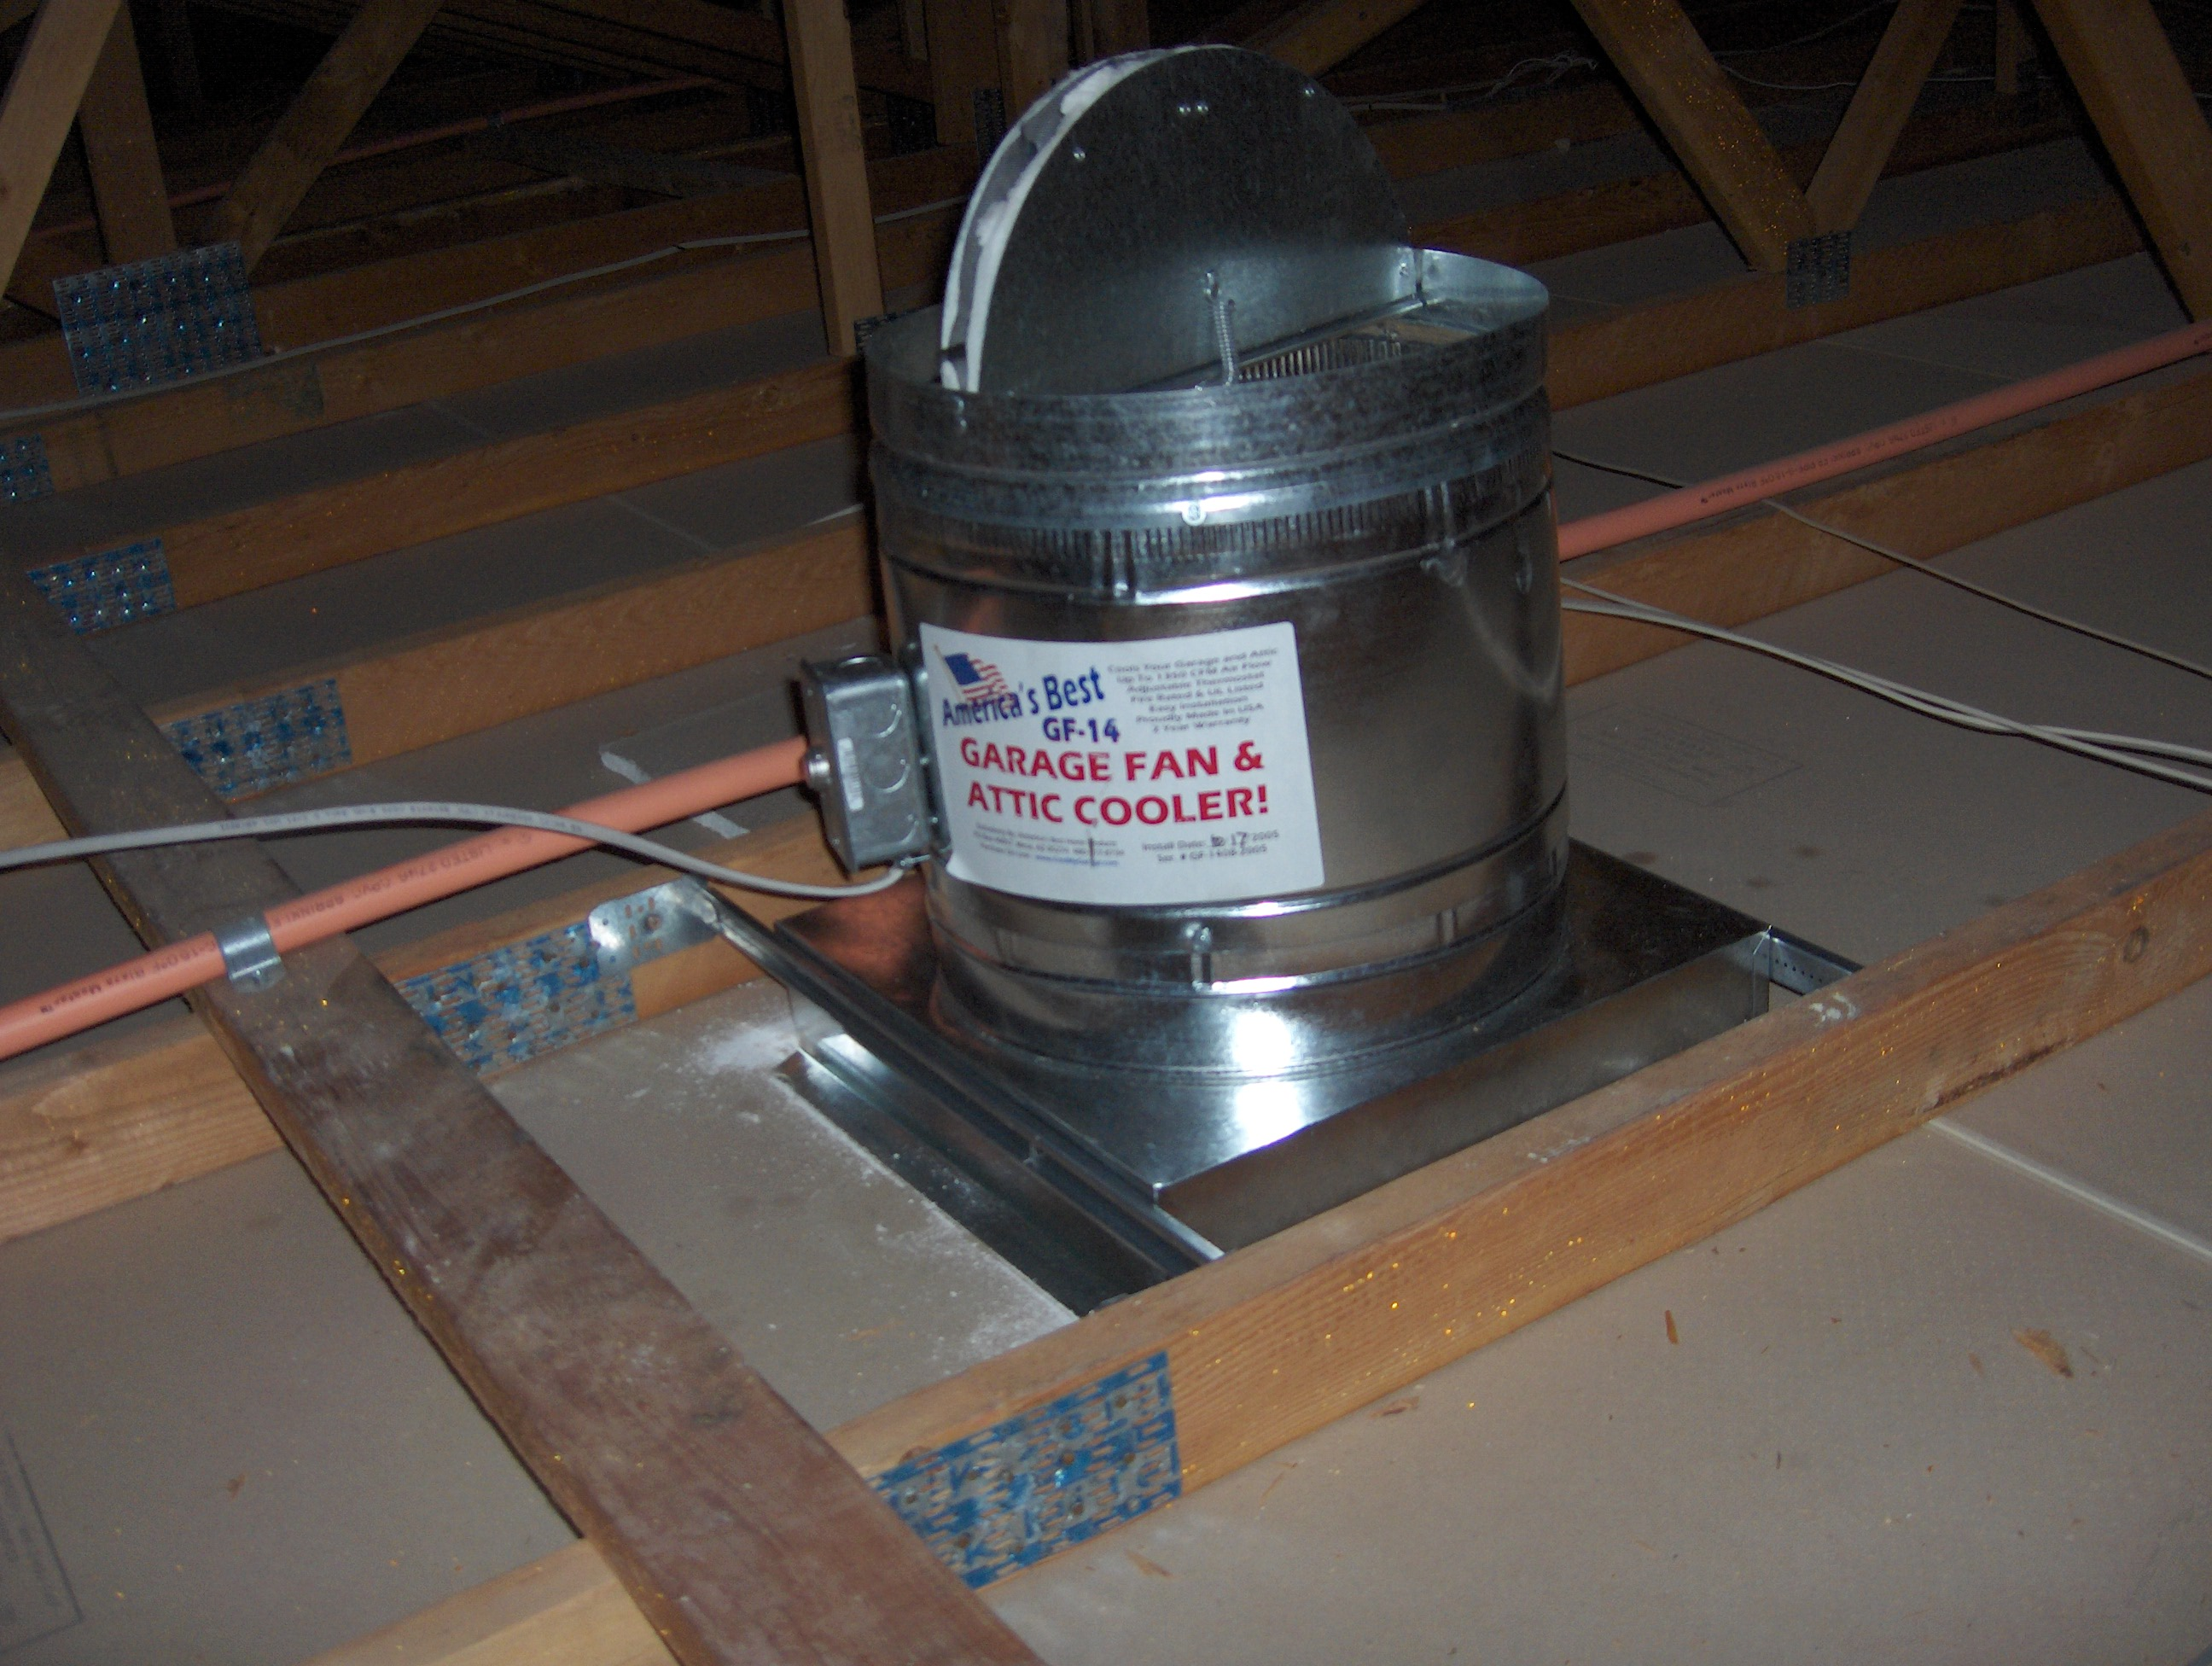 Garage Attic Fan >> The Gf 14 Garage Fan And Attic Cooler Buy Direct